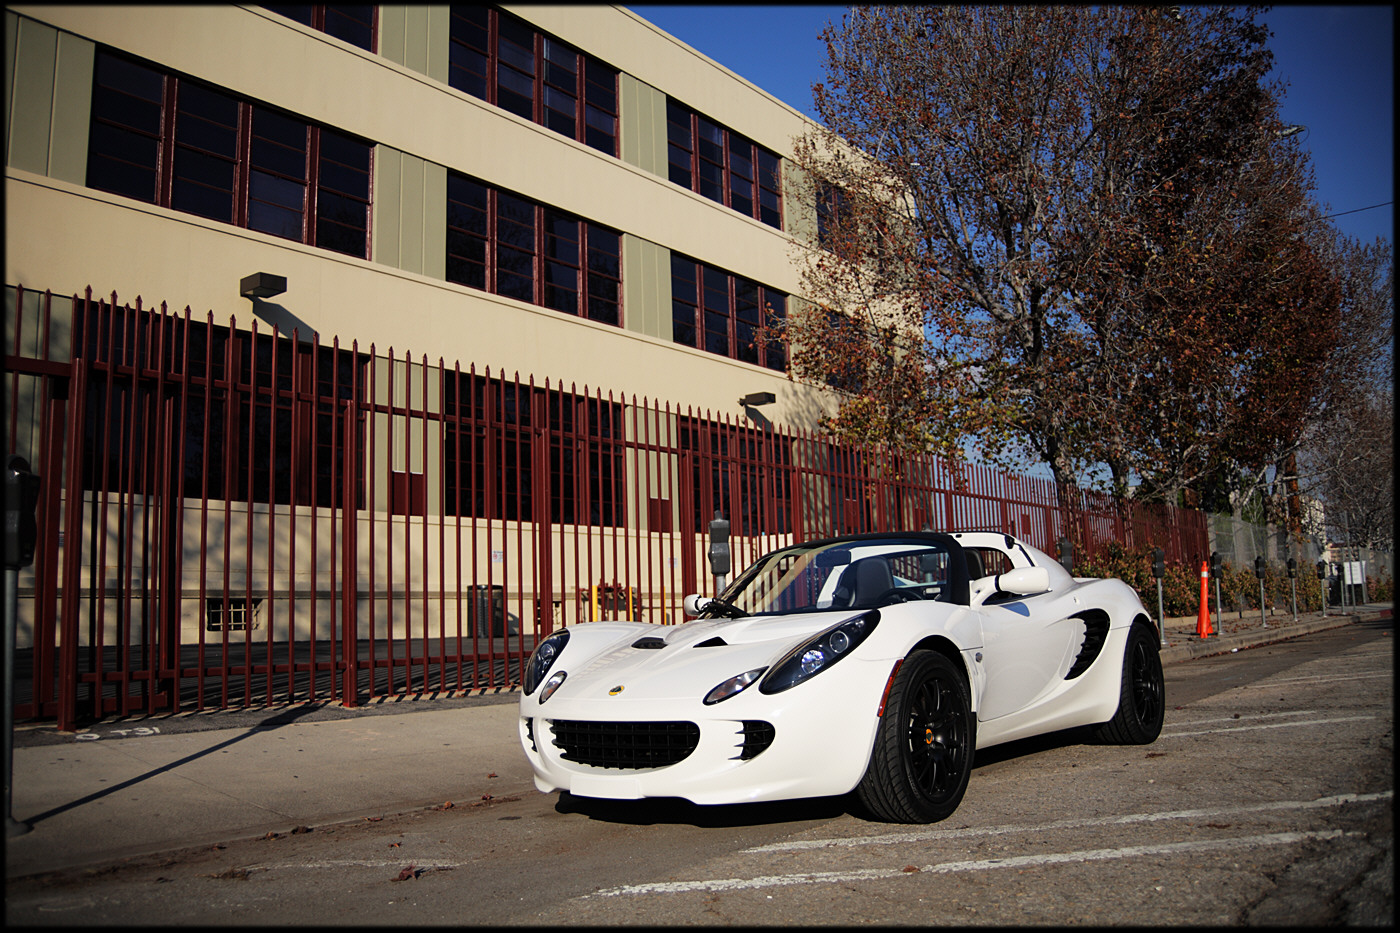 2009 Lotus Elise Monaco White Like New Azusa Ca